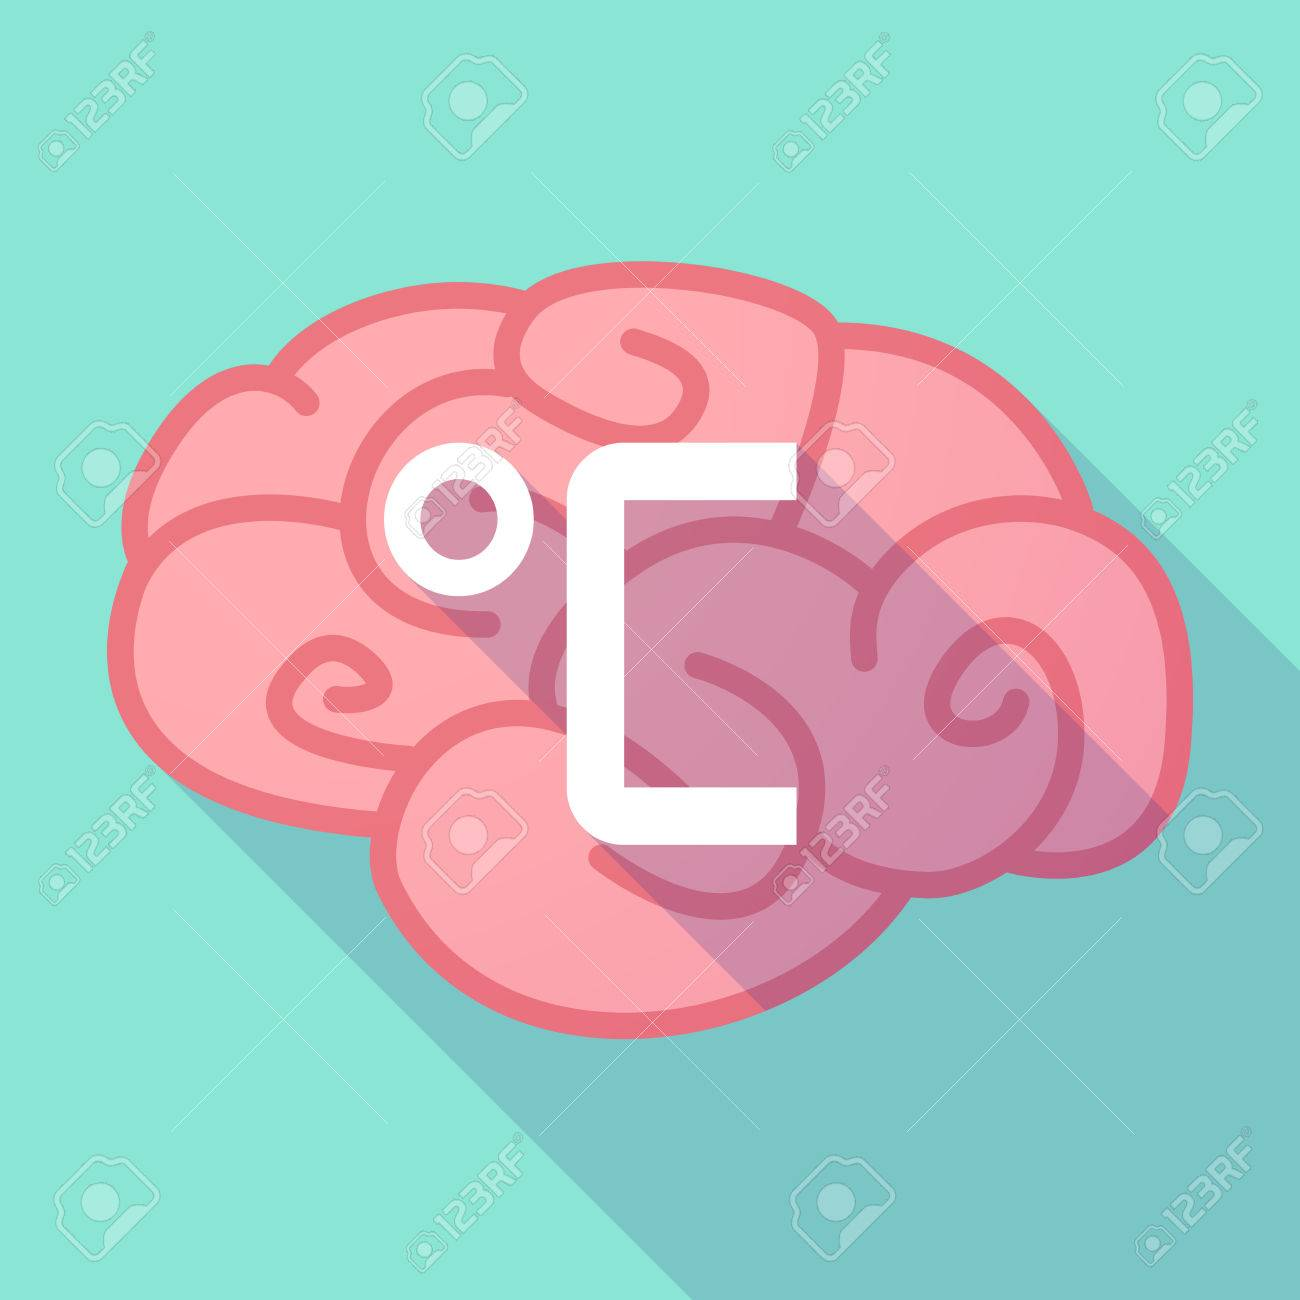 Illustration Of A Pink Long Shadow Brain With A Celsius Degree